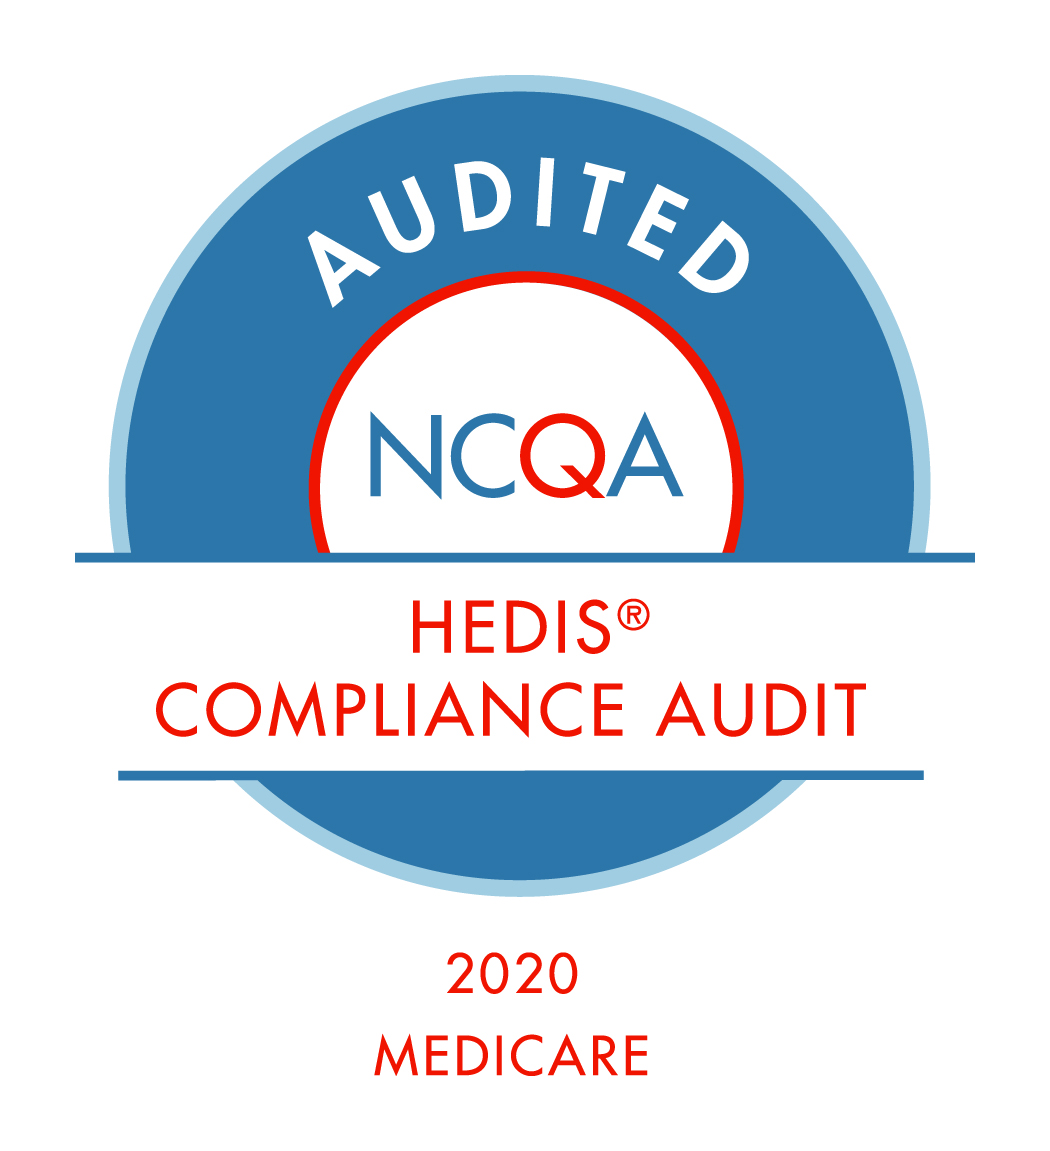 HEDIS Compliance audit award for 2020